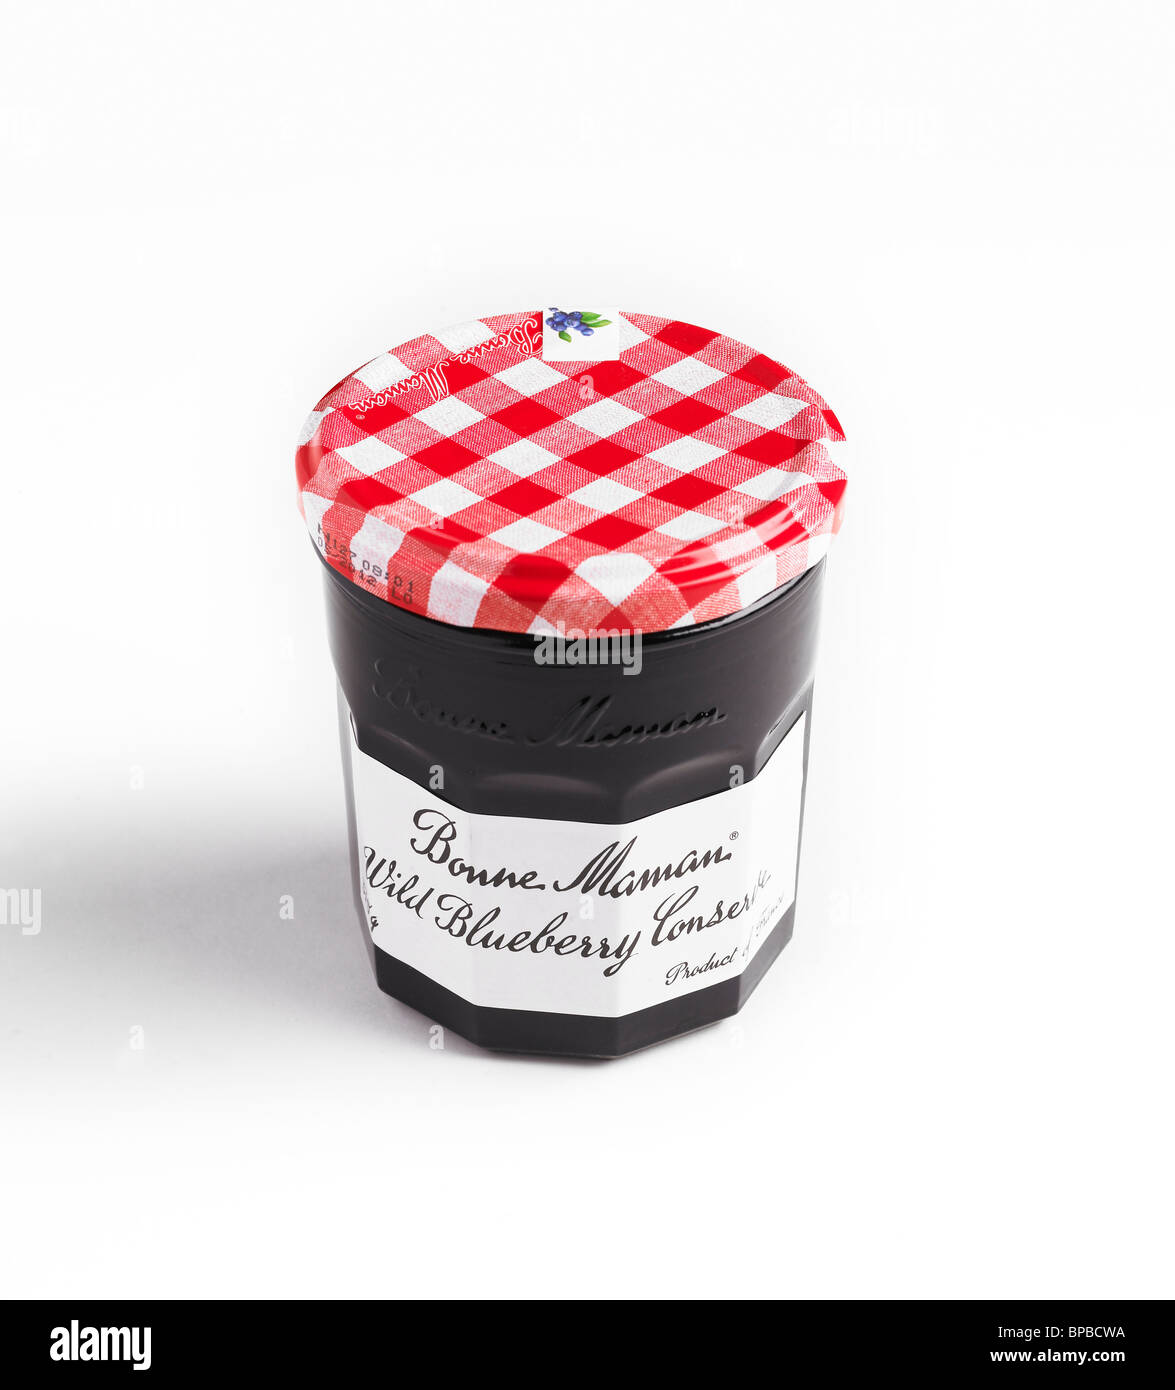 Bonne Maman Brand Wild Blueberry Conserve Packaging - Stock Image